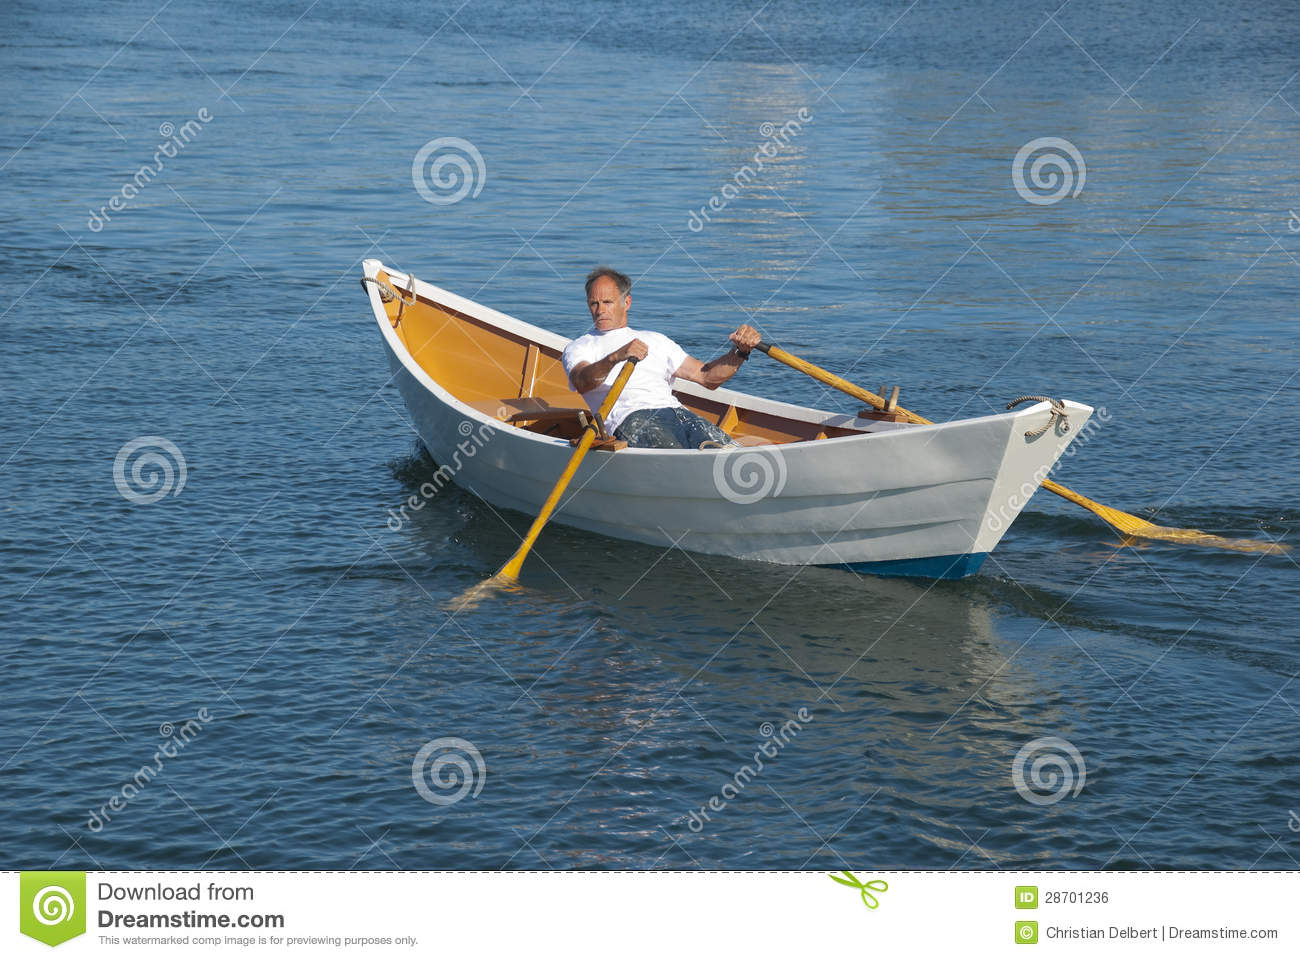 Man Rowing A Boat In Harbor Stock Photo - Image of recreation, water: 28701236